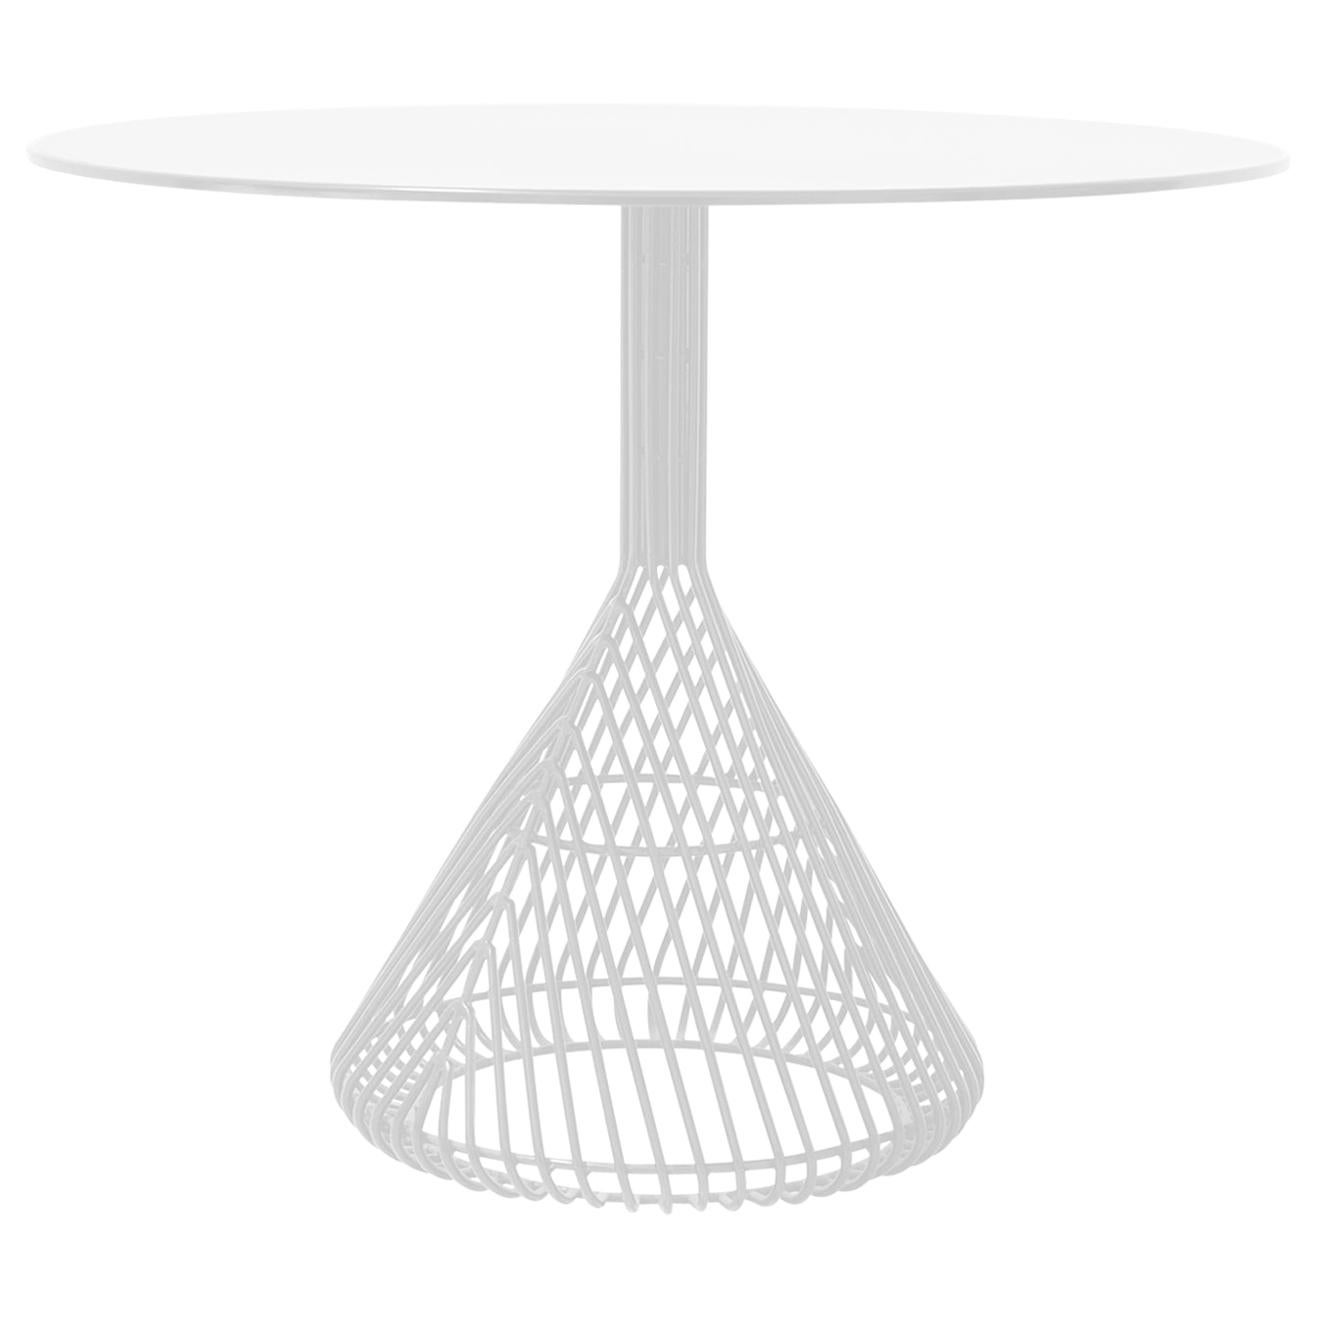 Modern Bistro Table, Wire Dining Table by Bend Goods in White with Metal Top